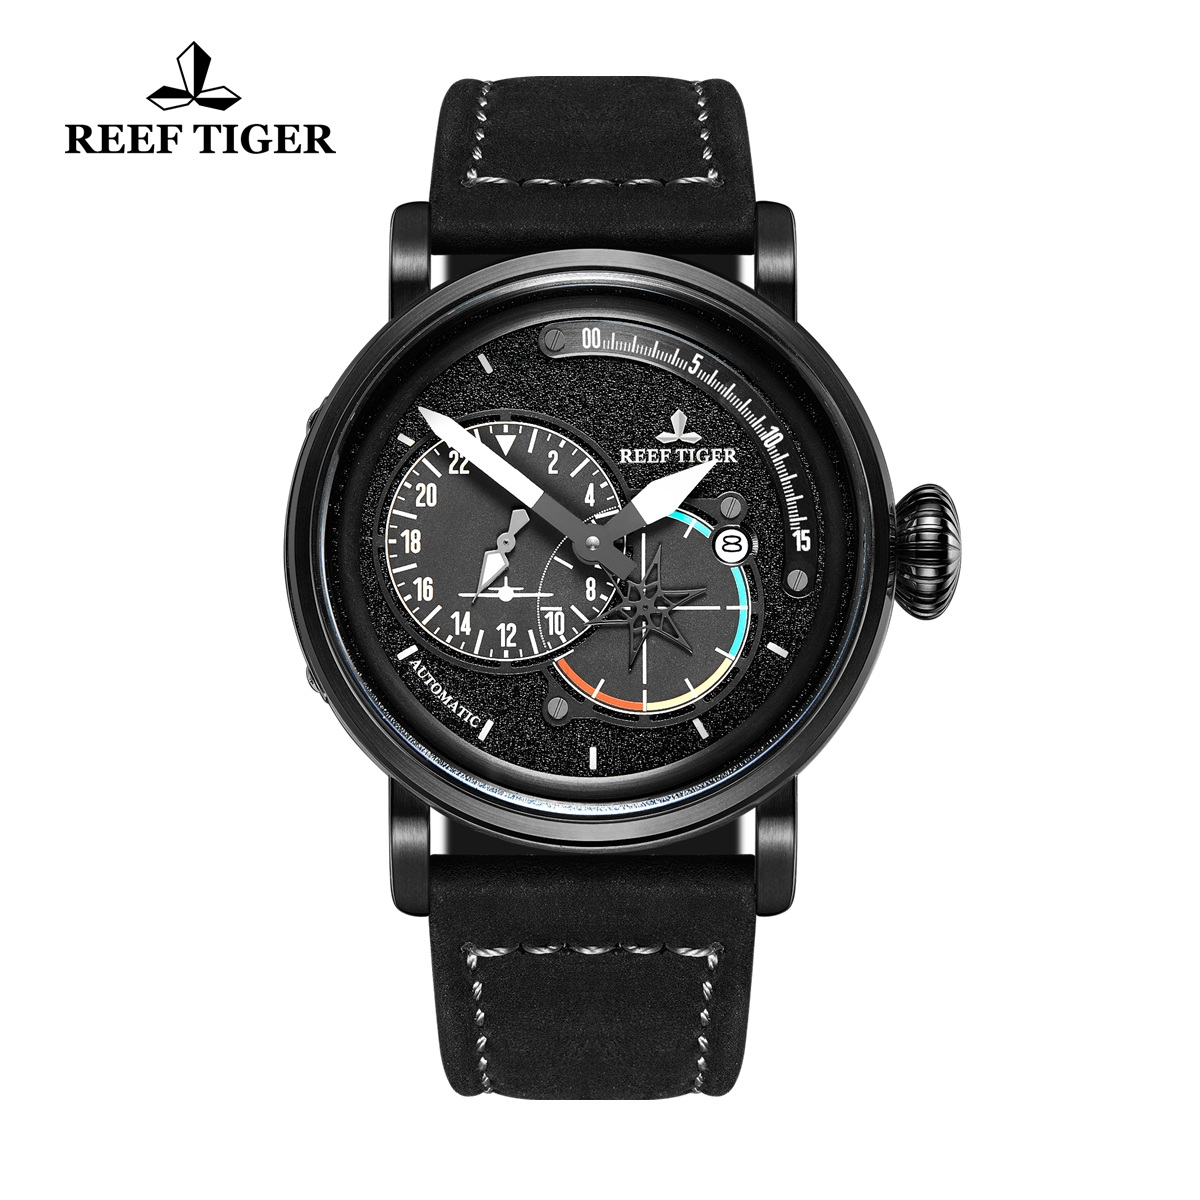 Reef Tiger Pilot Fashion Mens Watches PVD Case Black Dial Leather Strap Watches RGA3019-BBB